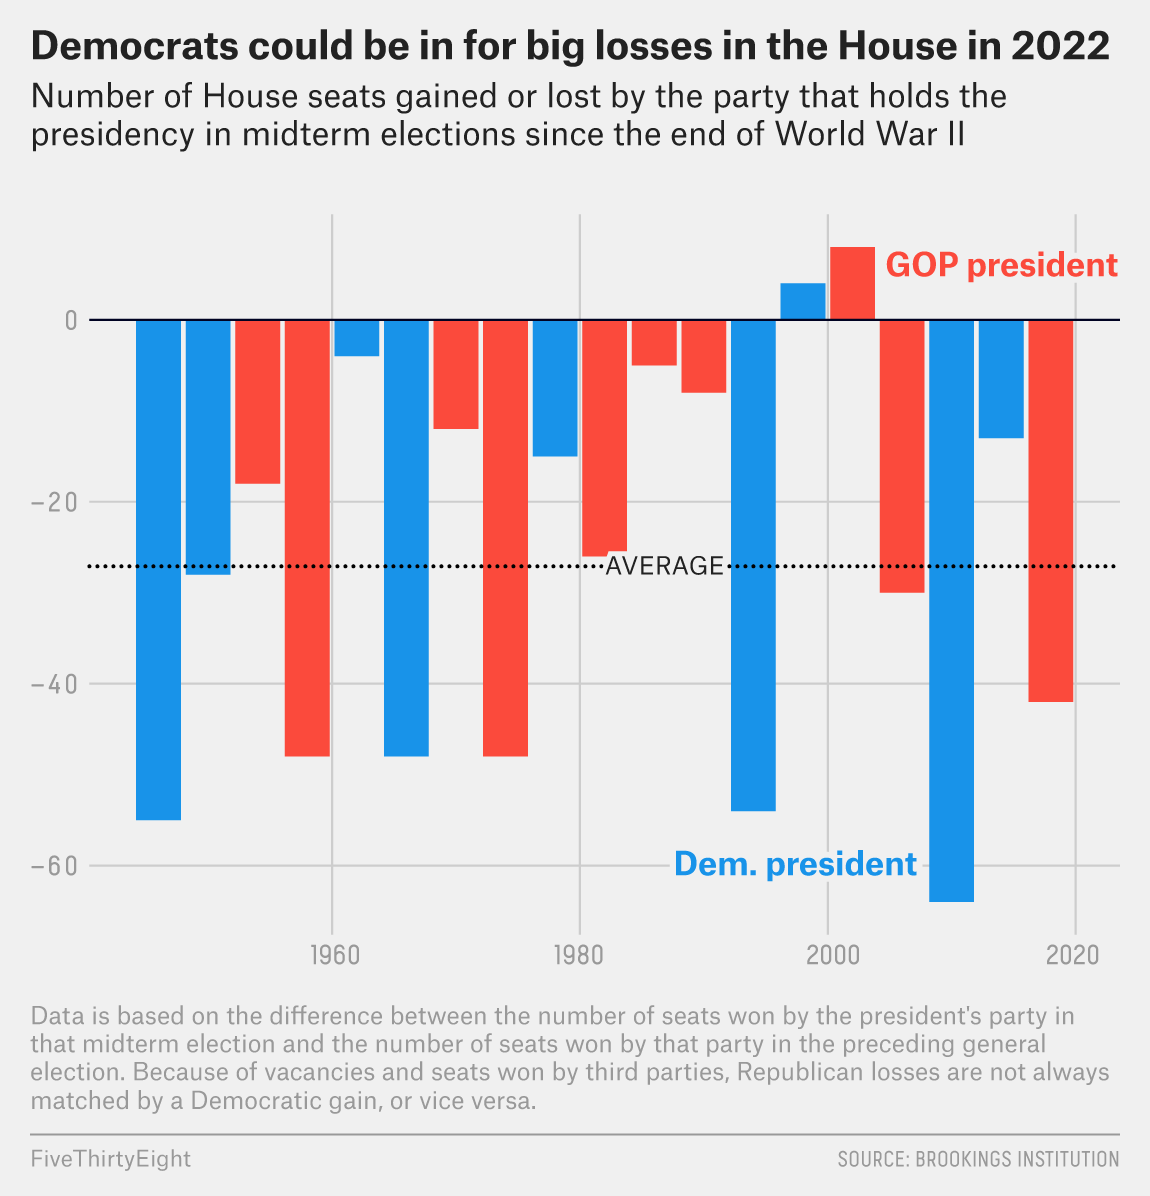 Republicans Are On Track To Take Back The House In 2022 | FiveThirtyEight